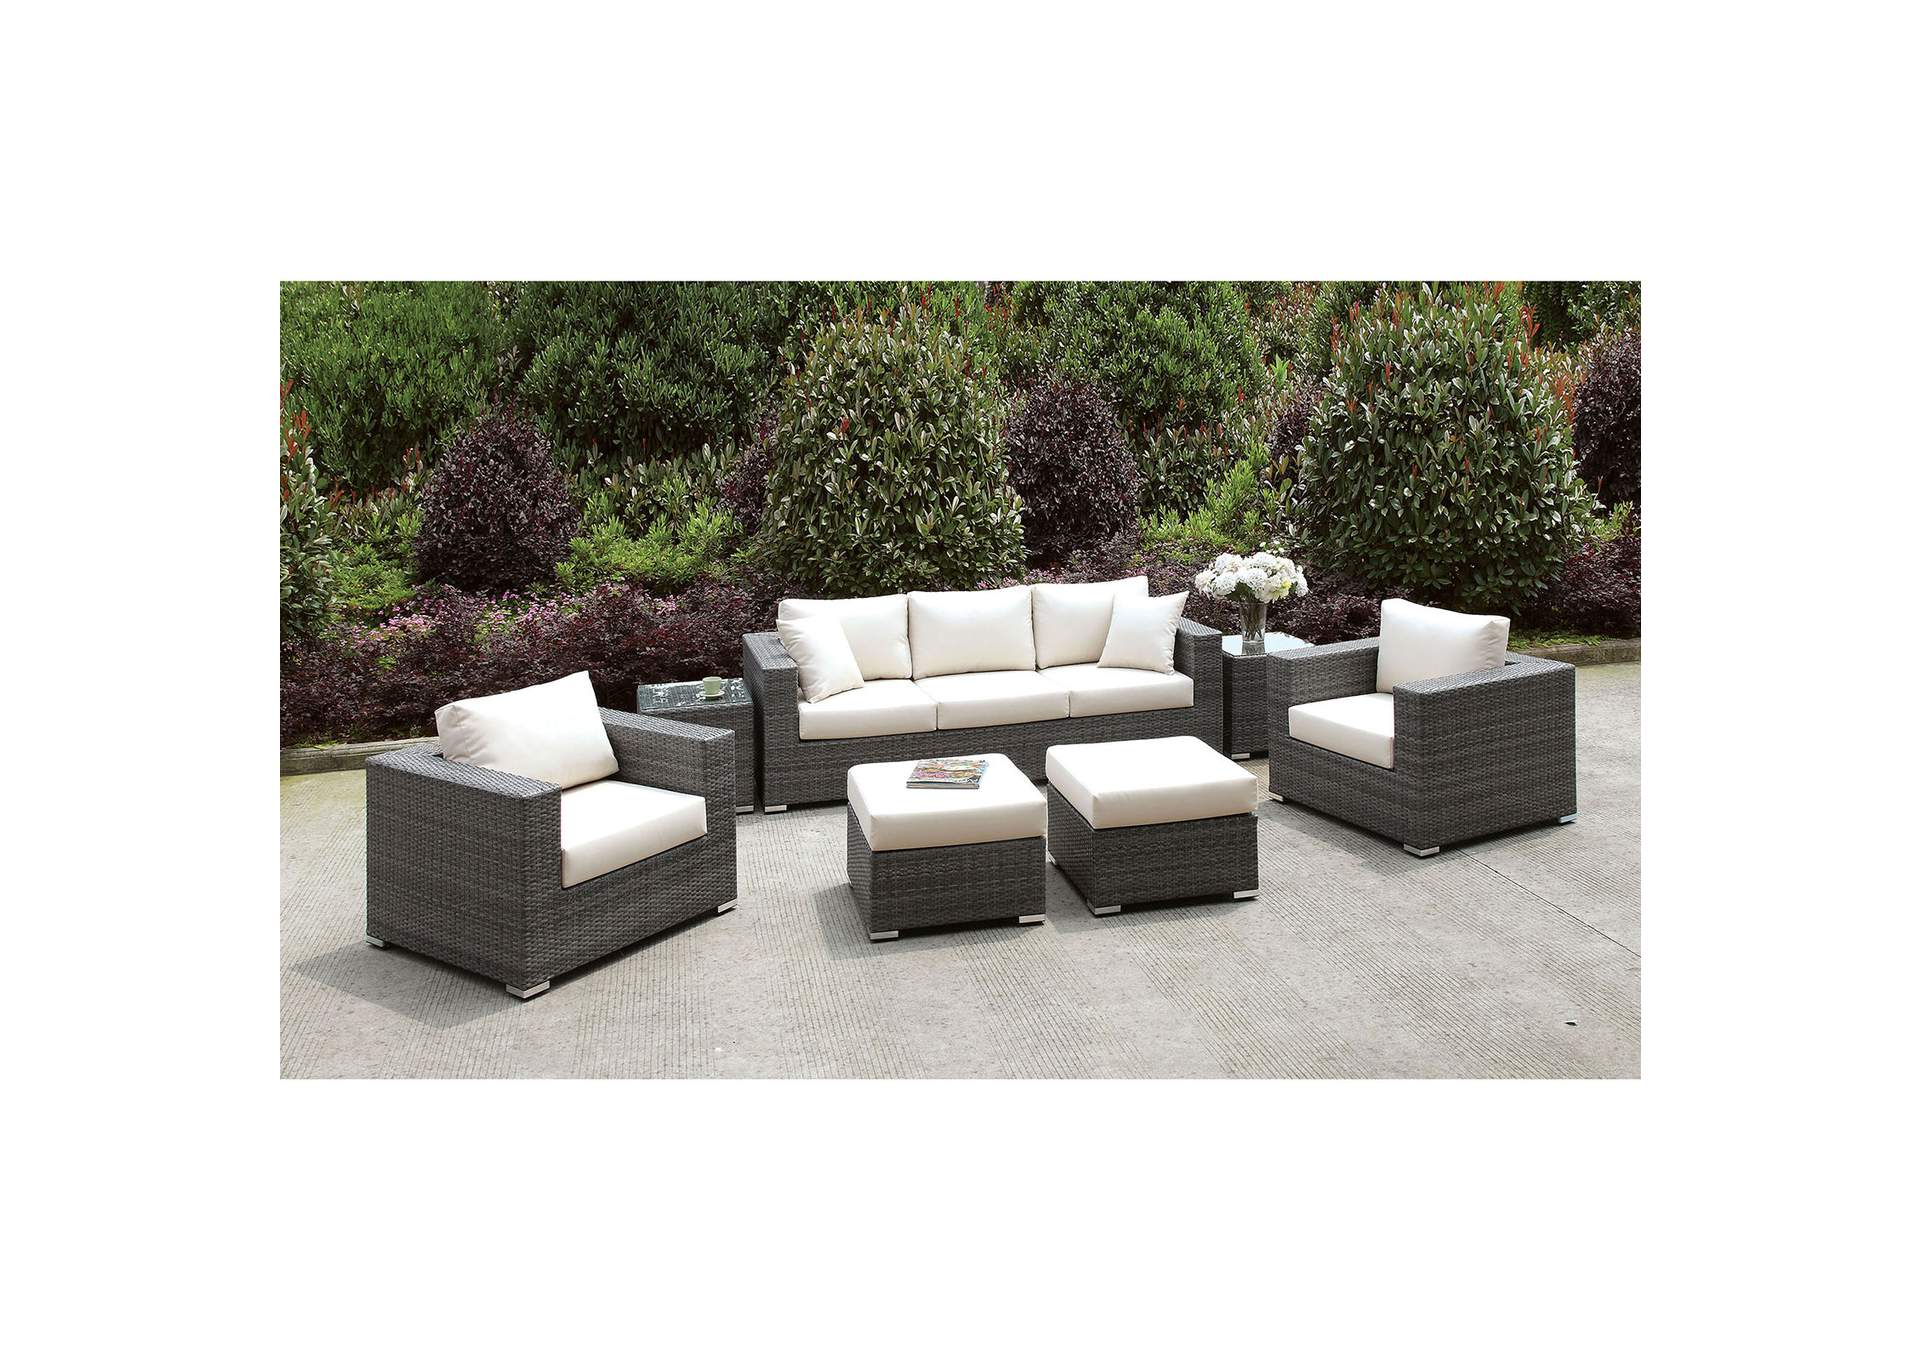 Somani Light Gray/Ivory Wicker Patio Set (Sofa, 2 Chairs, 2 End Tables & 2 Small Ottomans),Furniture of America